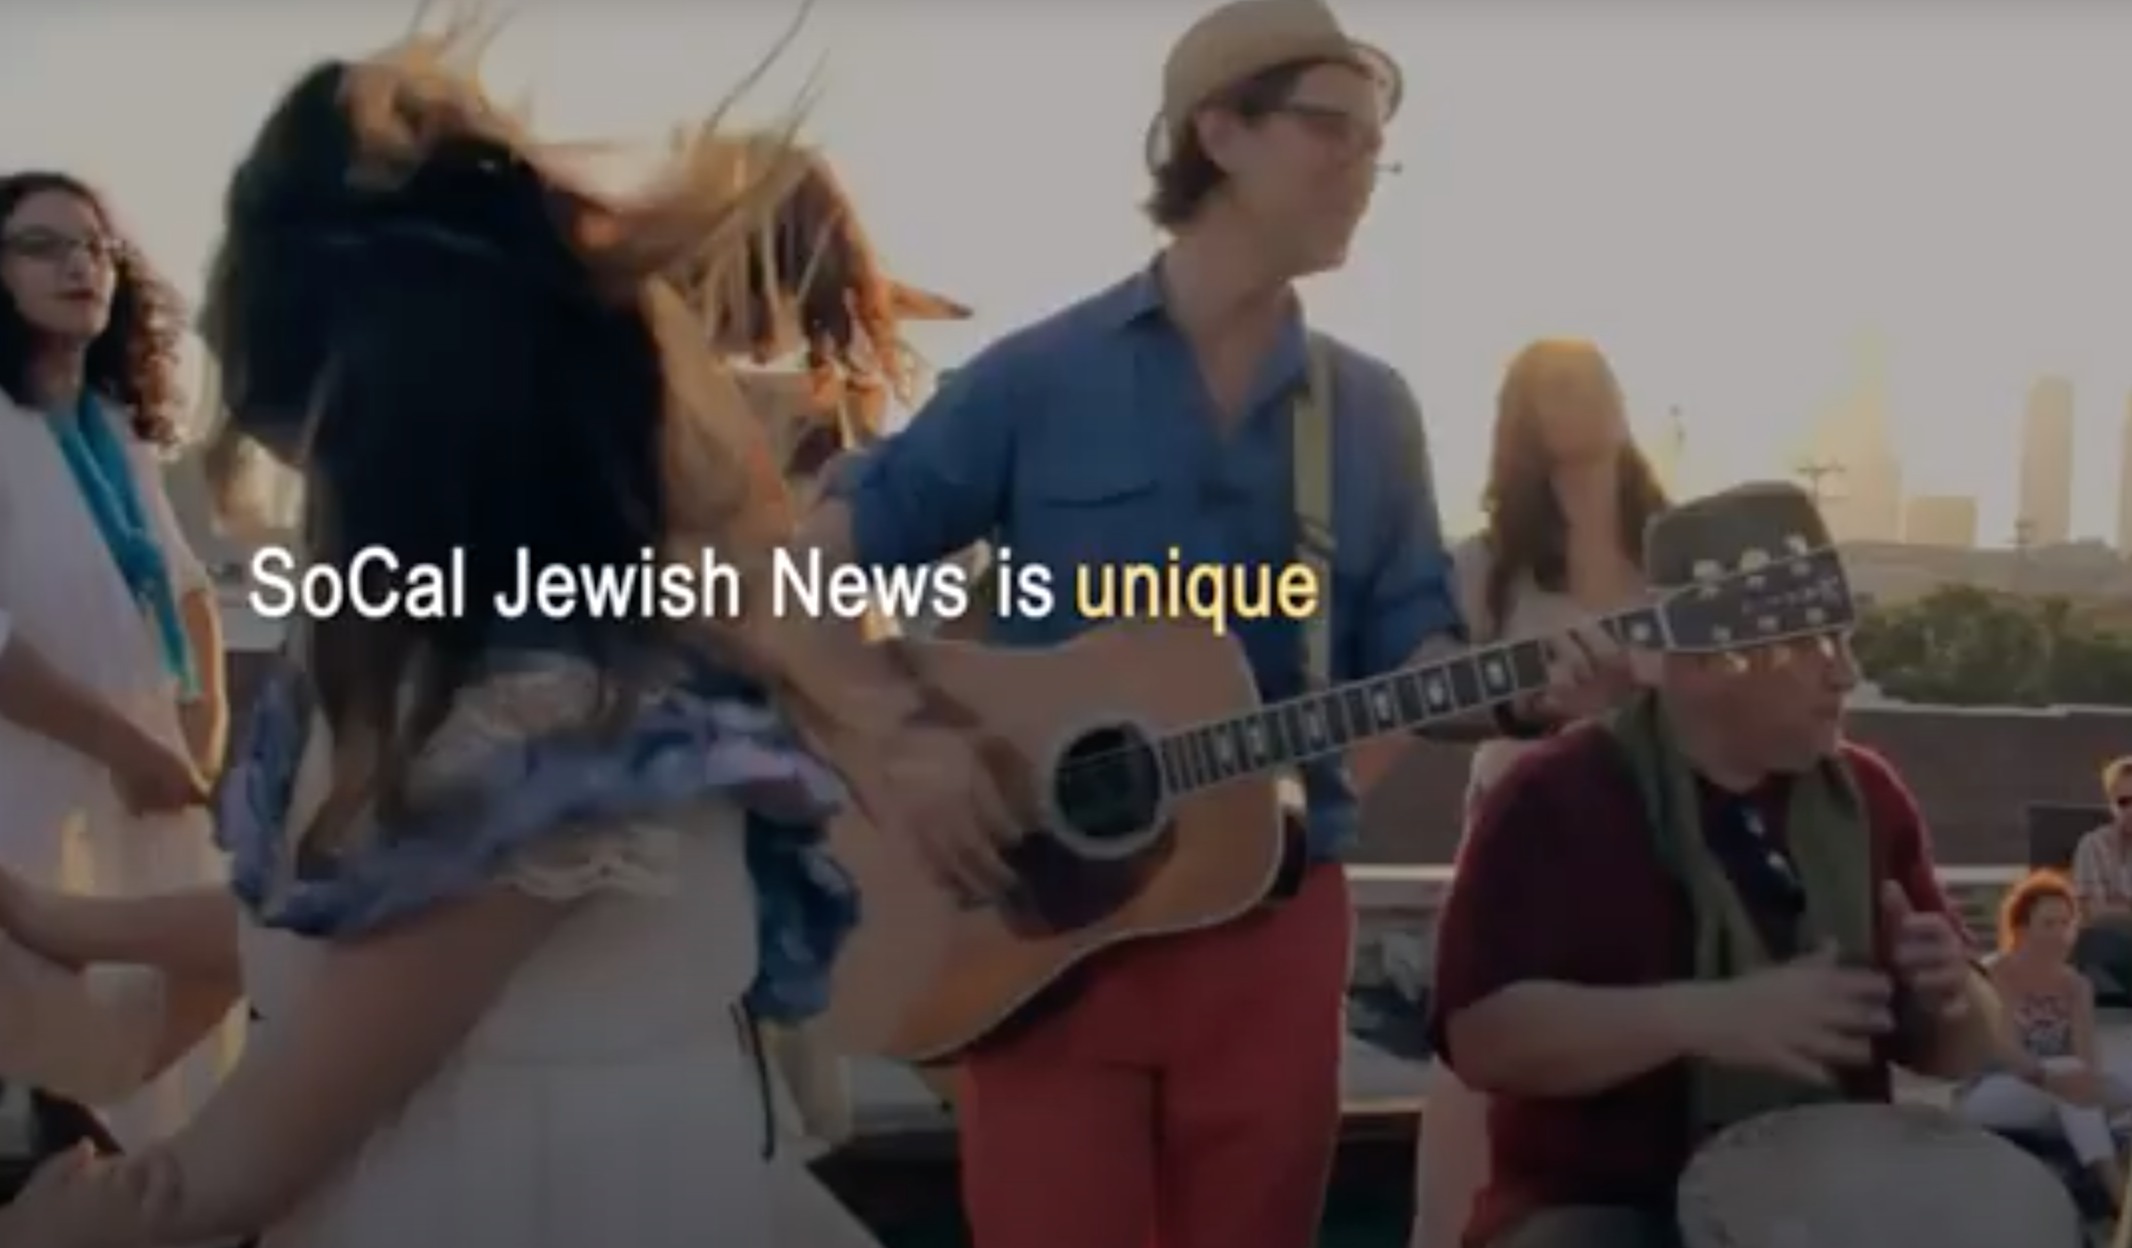 Screenshot from SoCal Jewish News promotional video.